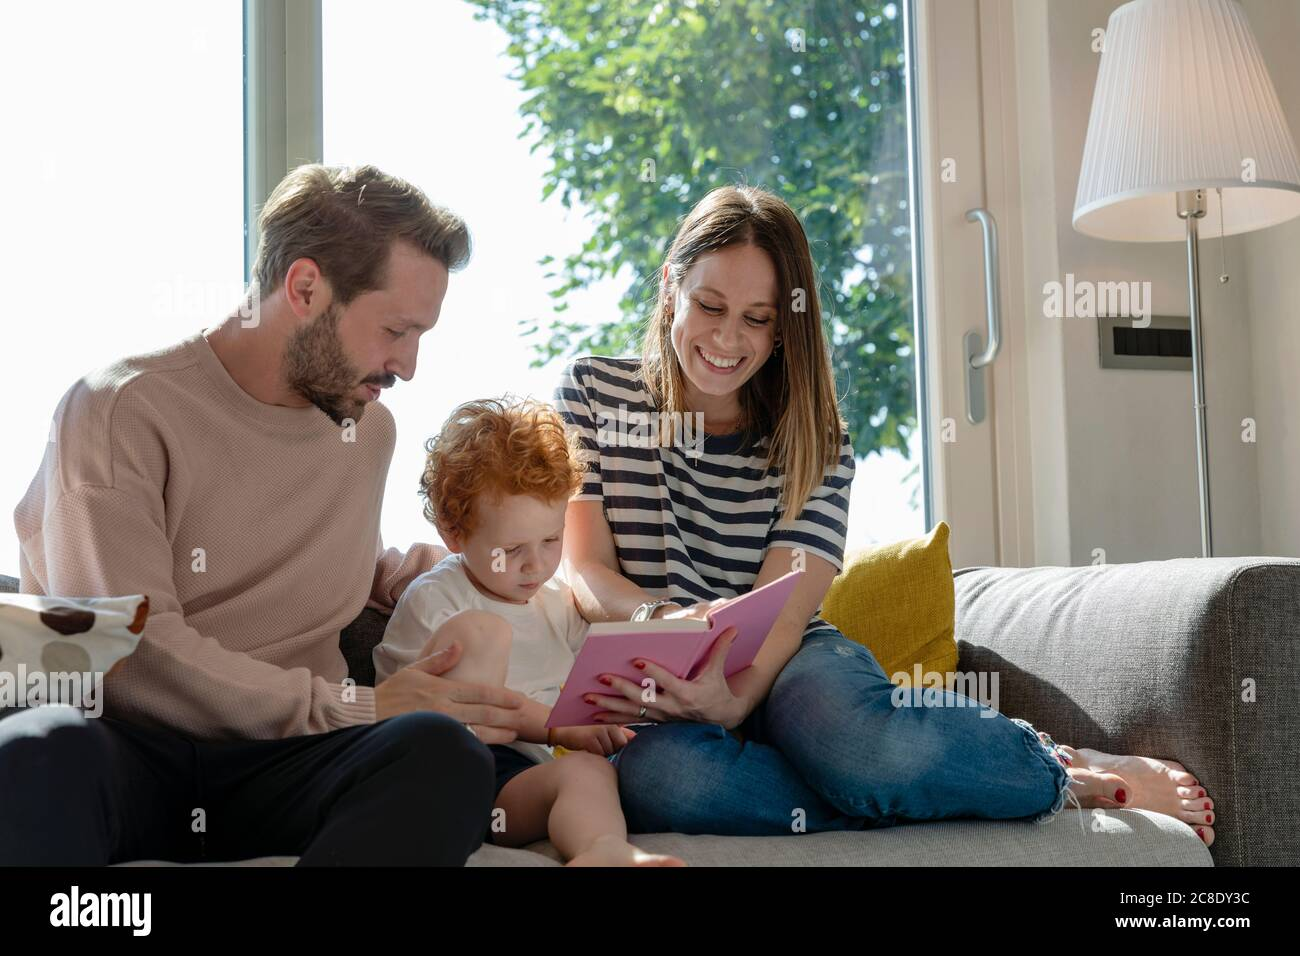 Smiling woman reading picture book while sitting by son and man on sofa in living room at home Stock Photo